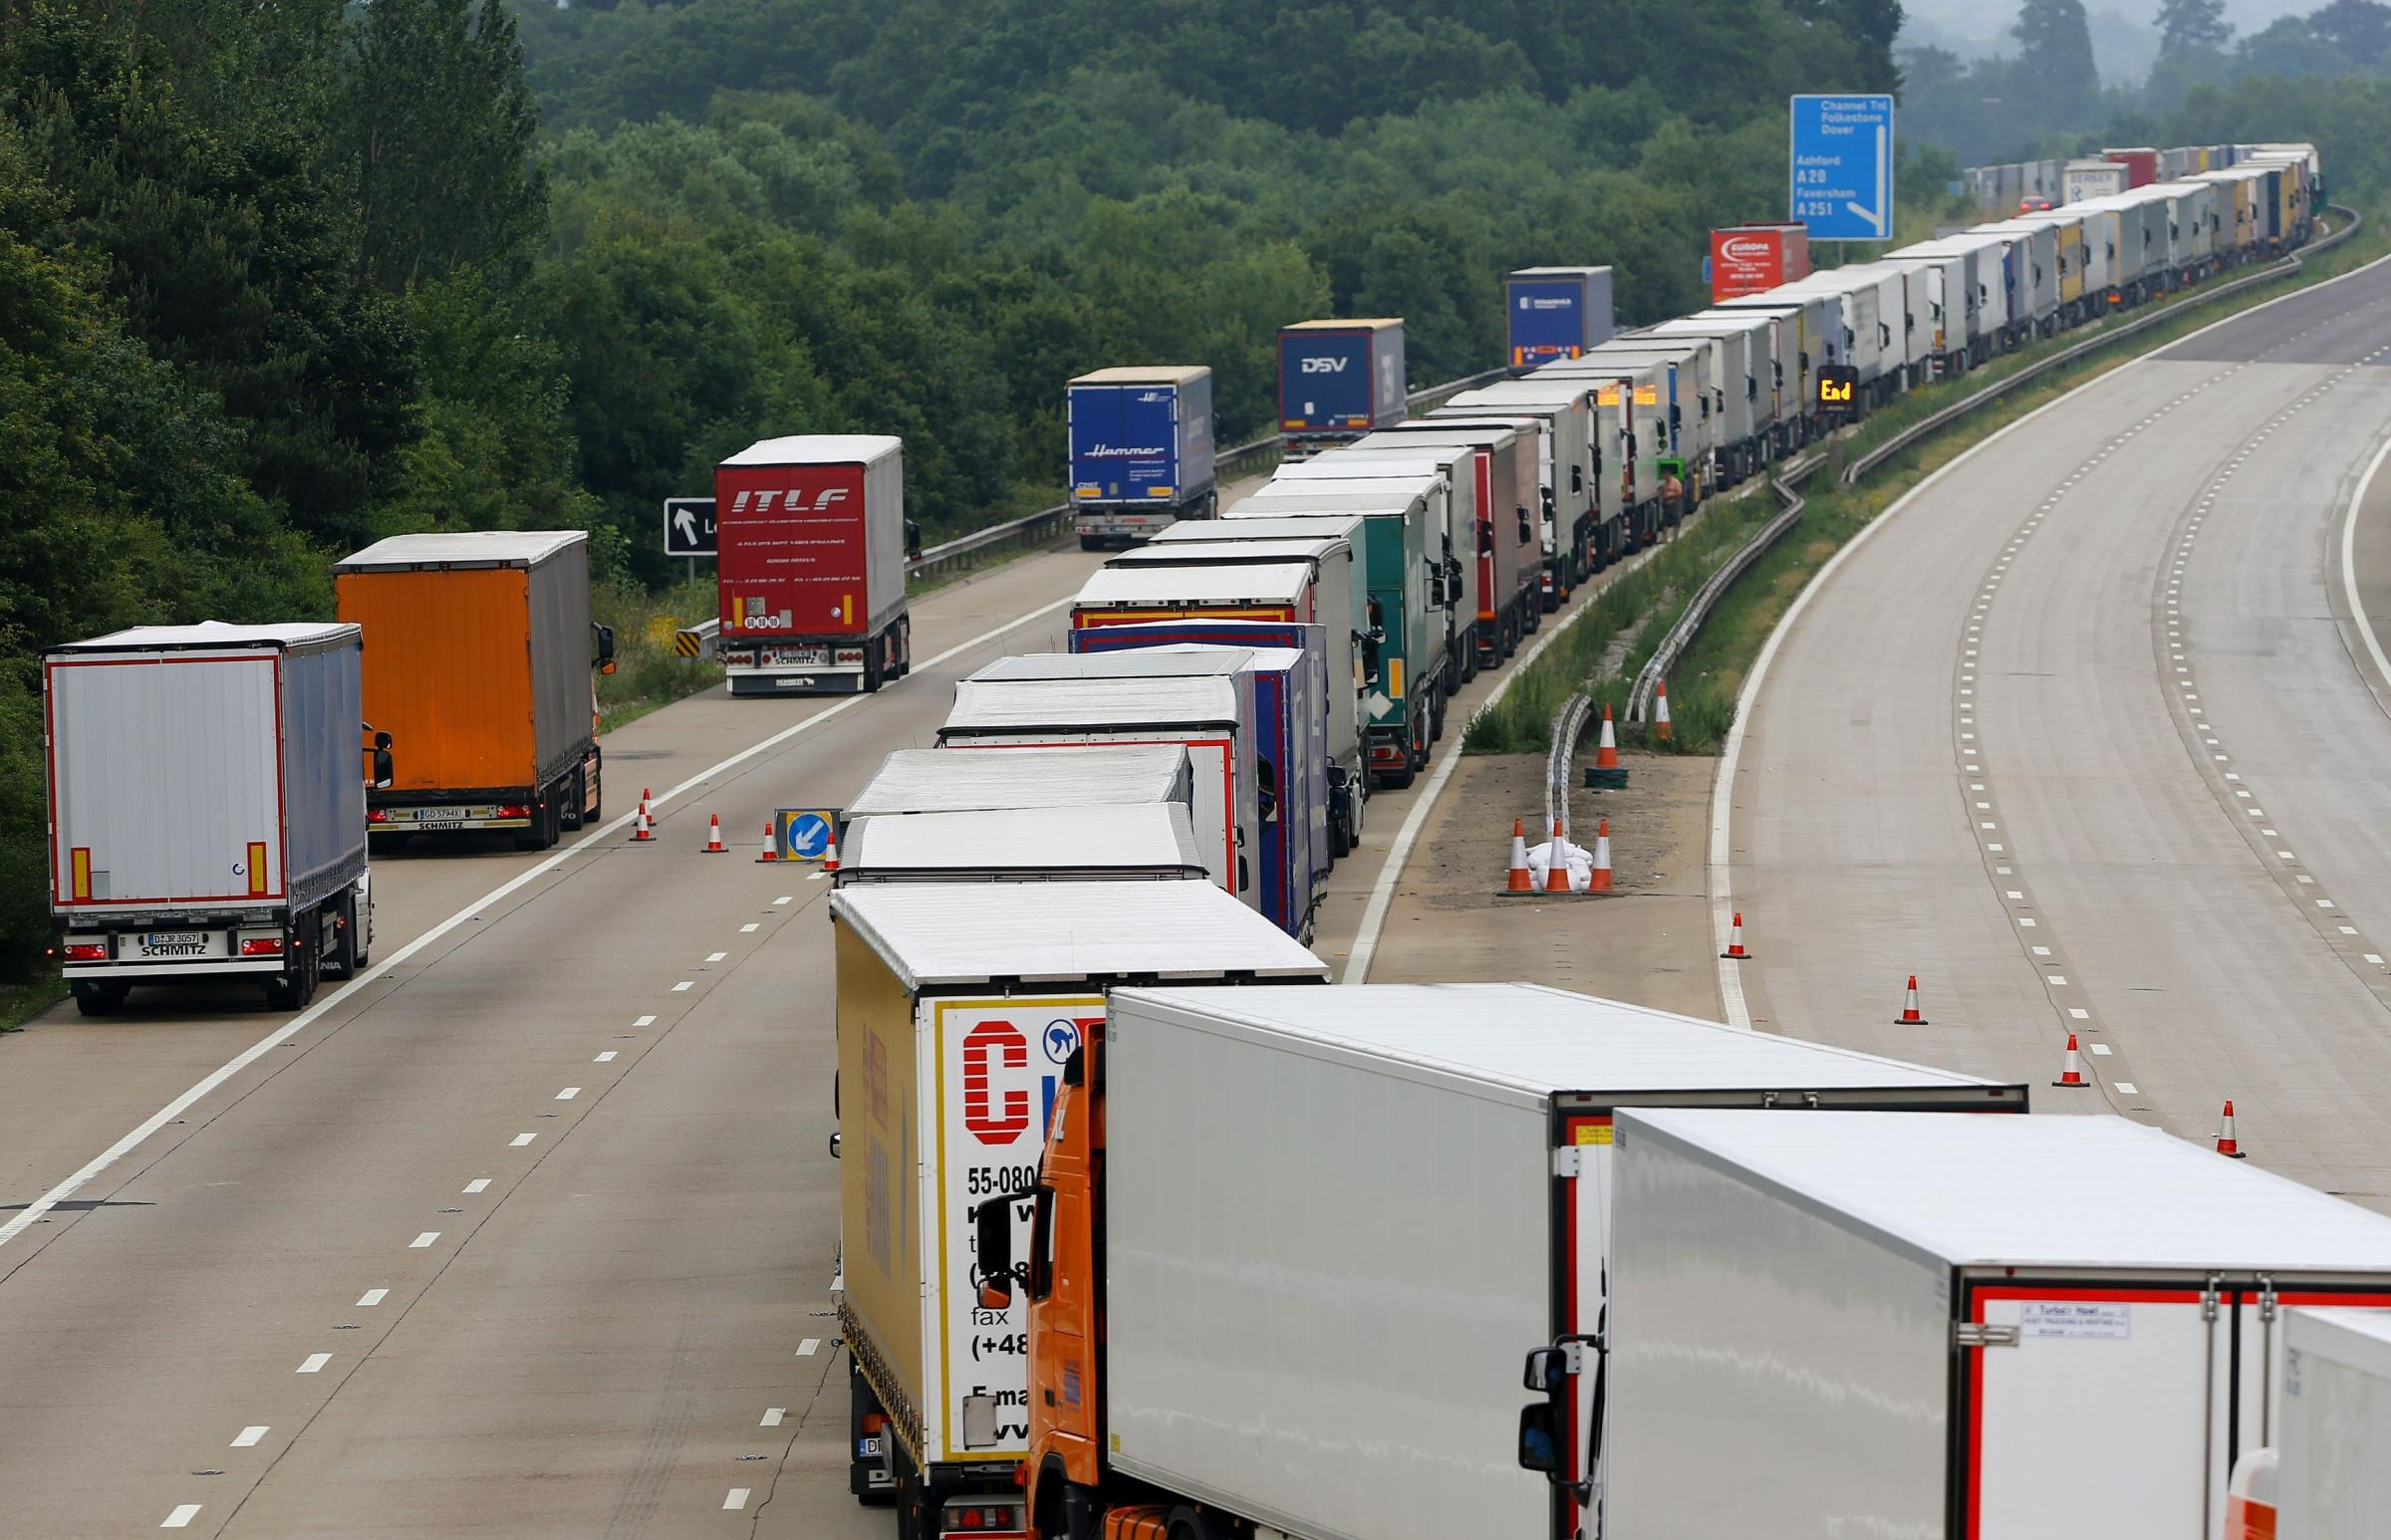 No-deal Brexit traffic jam test: Kent airfield turns lorry parking lot